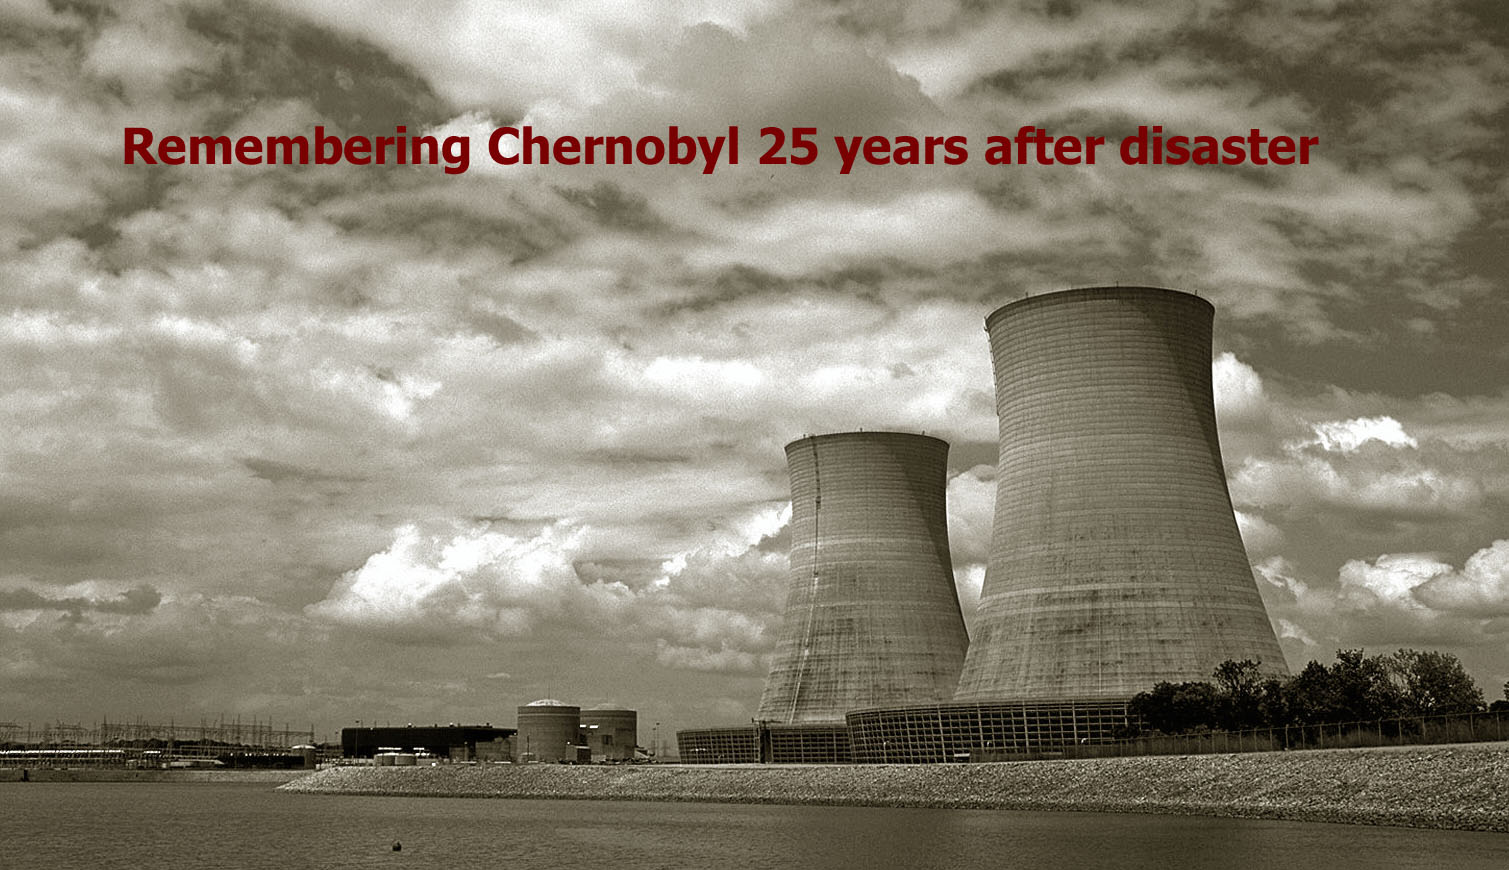 effects of chernobyl diasater 34 the lingering effects of the chernobyl disaster jace a ball the meltdown at the chernobyl nuclear power plant is one of the worst environmental disasters to befall humanity.